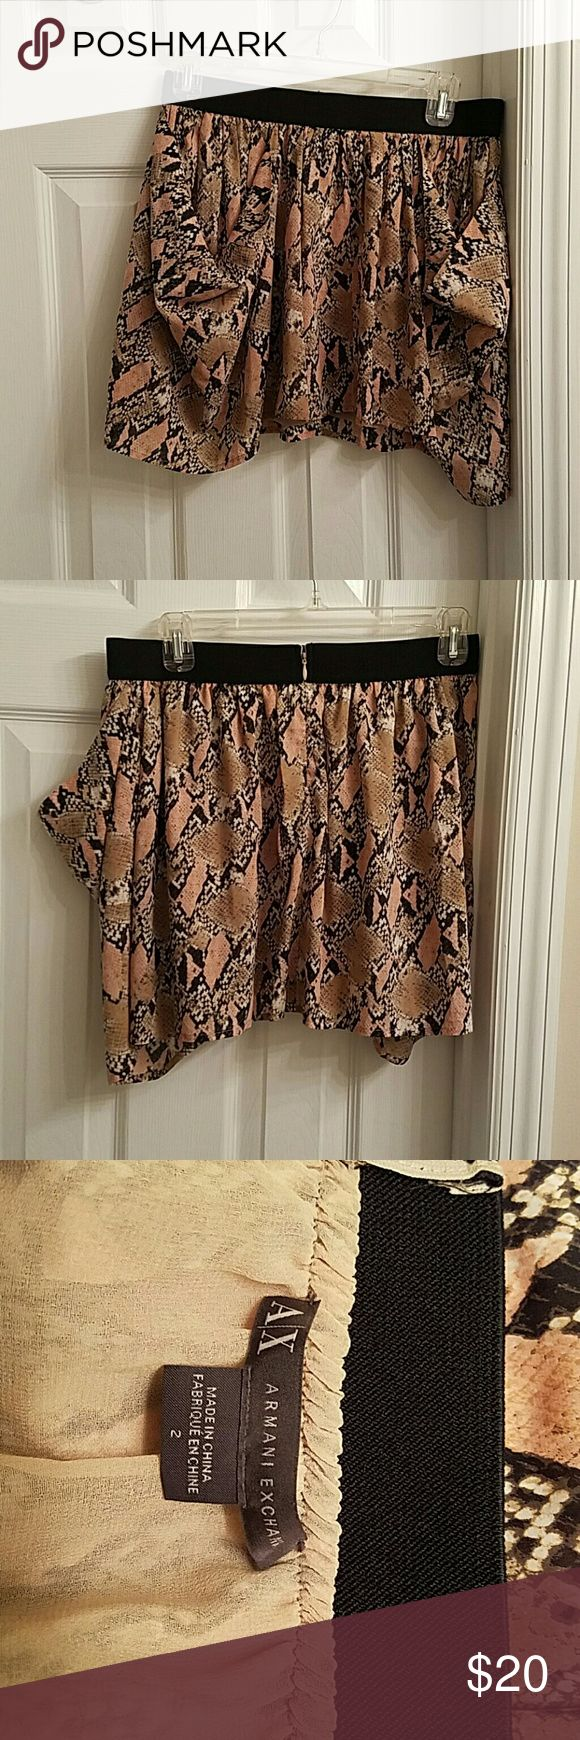 Armani Exchange skirt Armani Exchange skirt in a plush snake skin print in size 2 lightly lined . In great condition Armani Exchange Skirts Midi